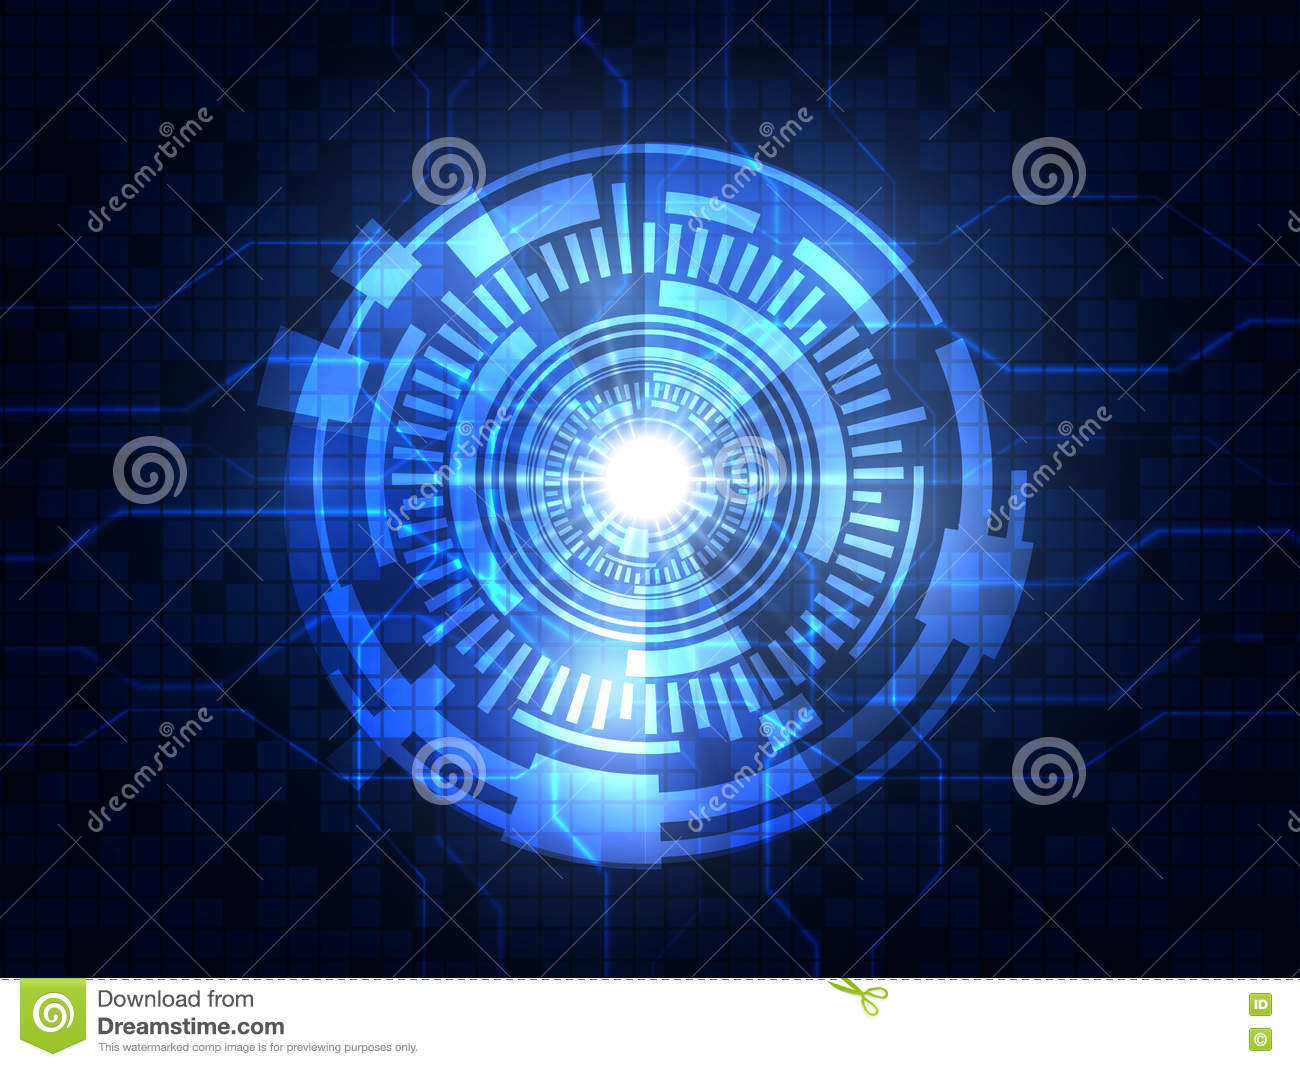 Abstract blue futuristic digital technology background. Vector illustration